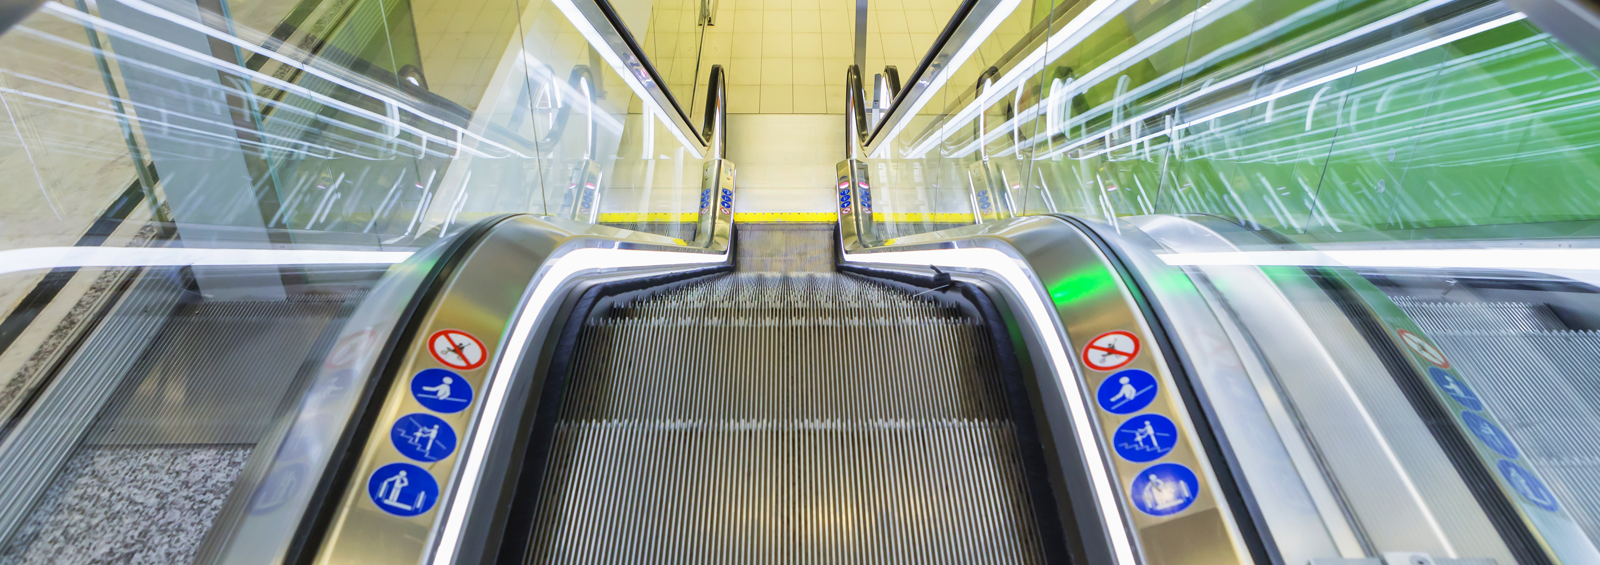 Escalator Solution 01